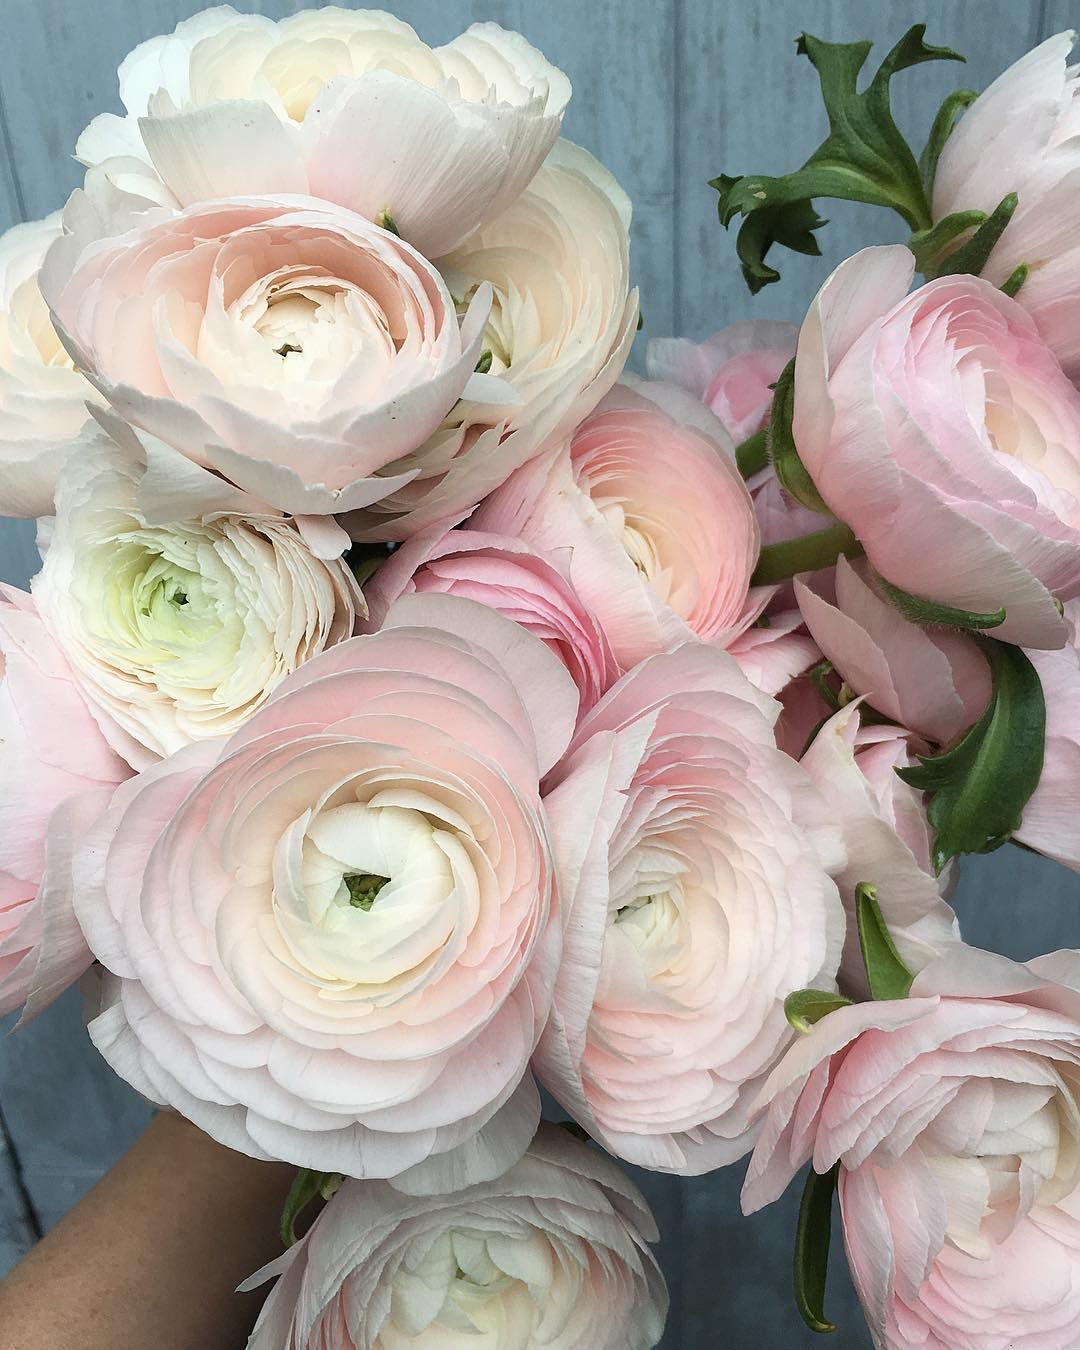 Steph Turpin On Instagram My Present To Myself Yesterday If You Can T Buy Yourself A Bunch Of The Prettiest Ranunculus On Flower Lover Plants In Jars Bloom